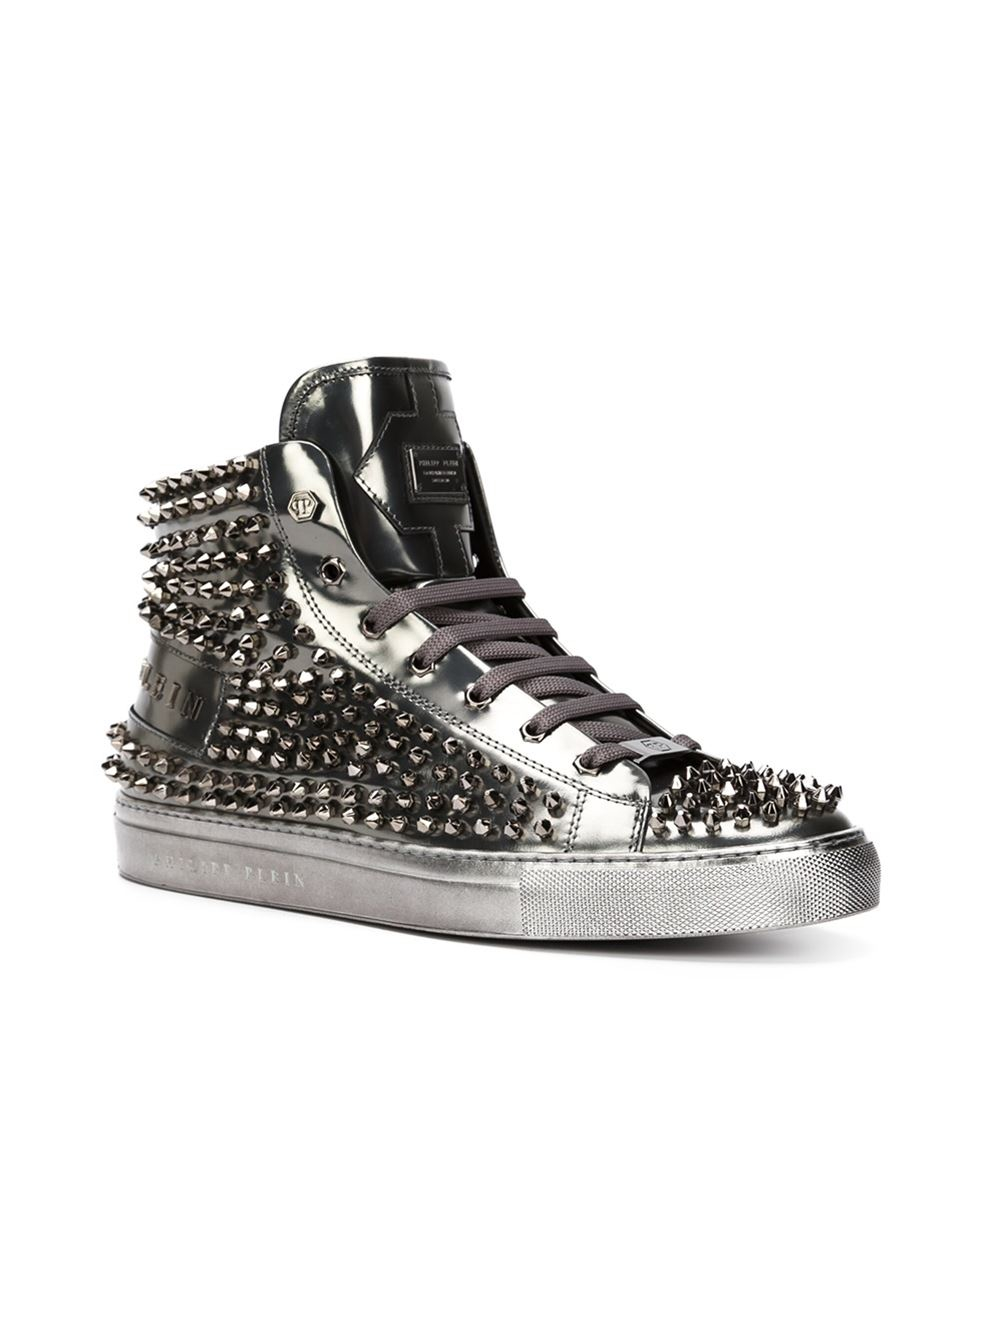 lyst philipp plein 39 high 39 hi top sneakers in gray for men. Black Bedroom Furniture Sets. Home Design Ideas